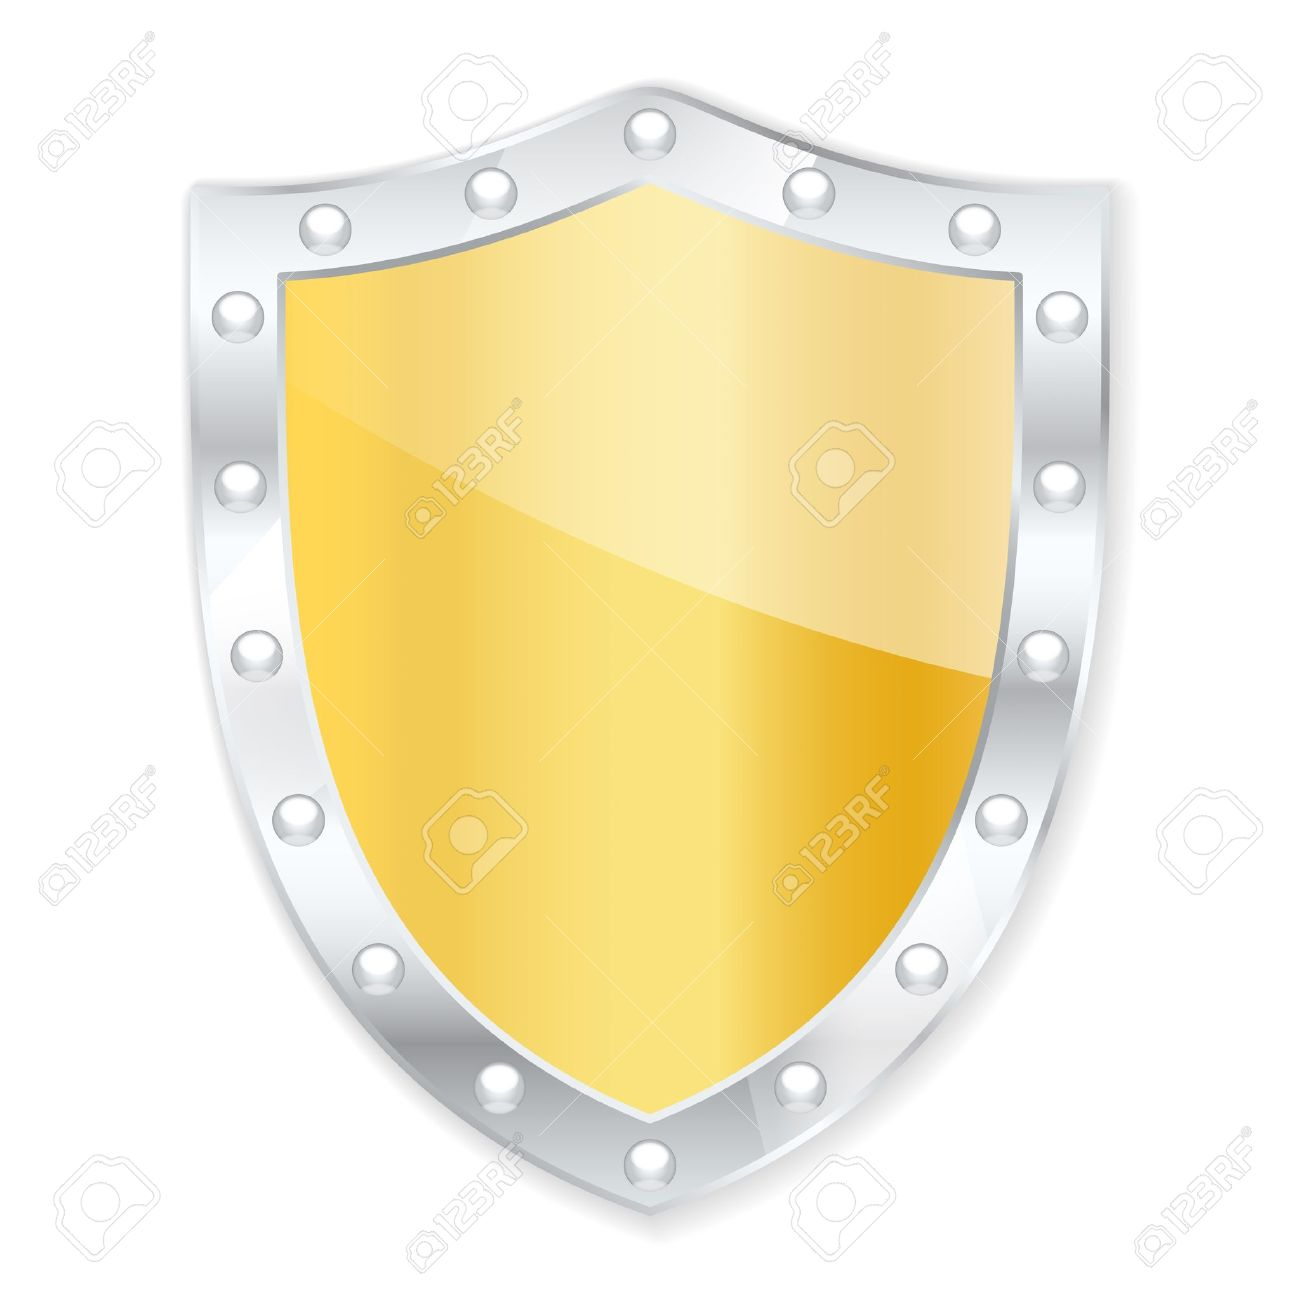 Protection shield. Stock Vector - 16023066